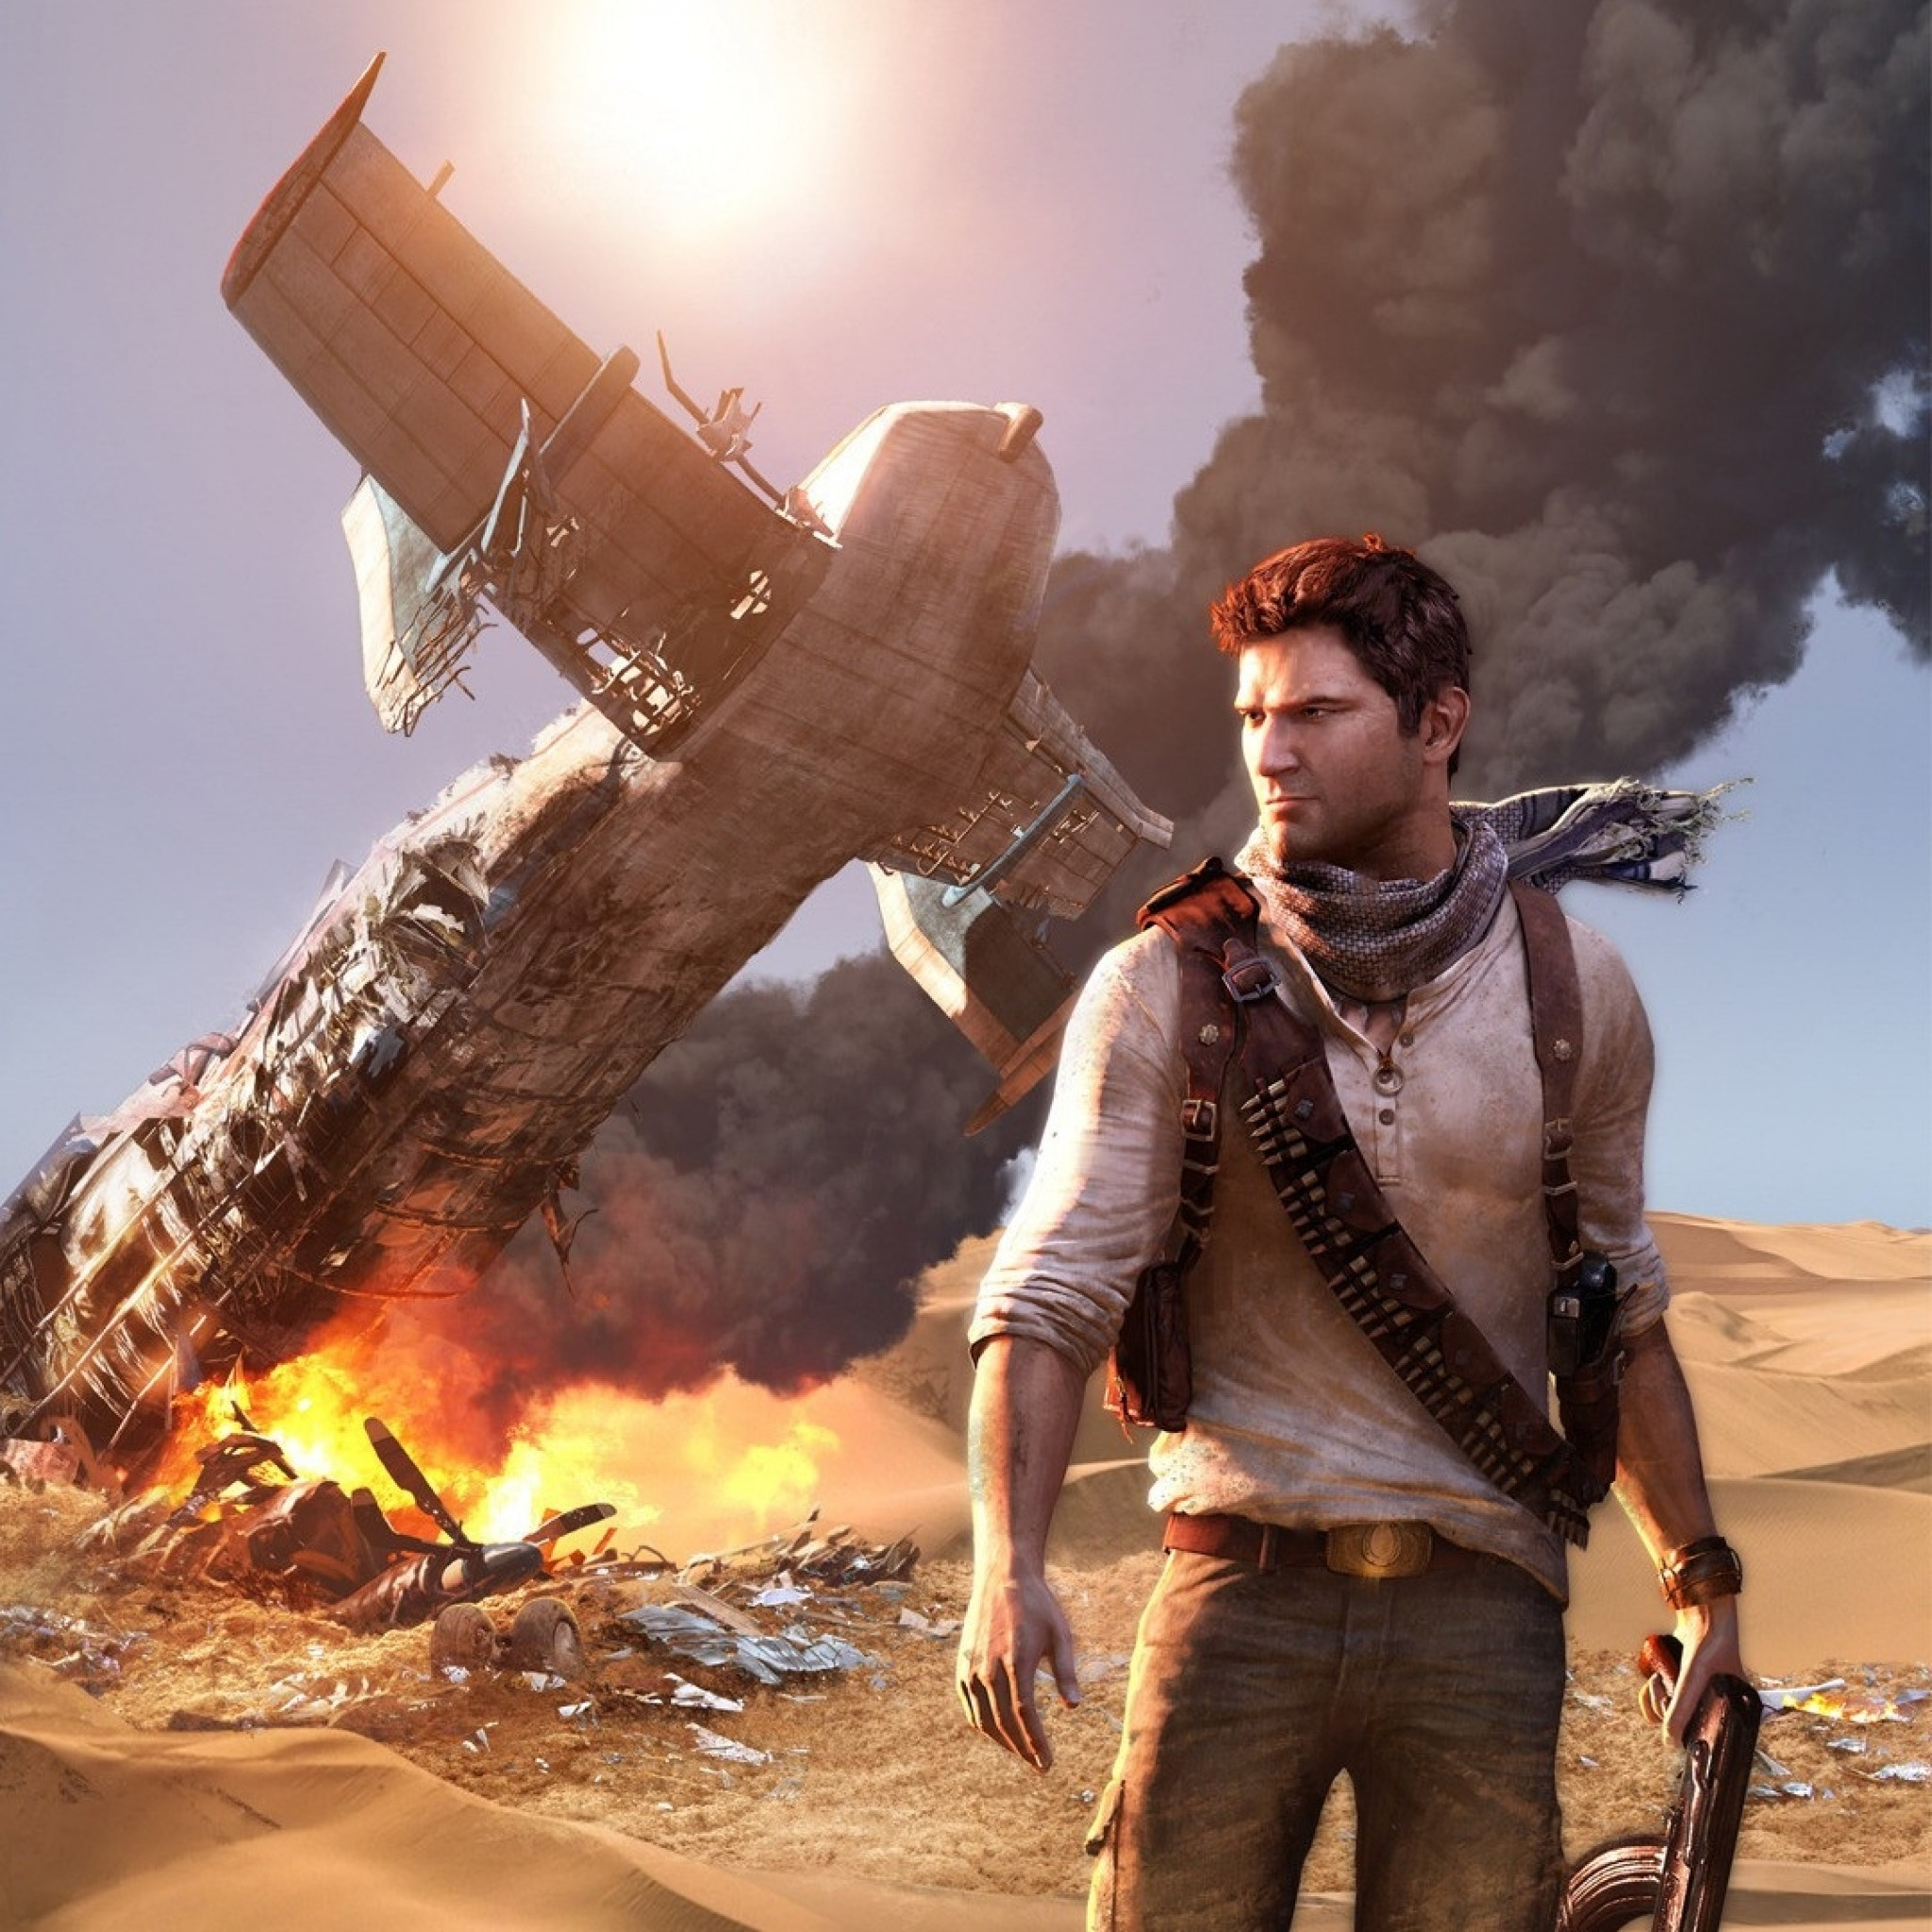 2048x2048 Preview wallpaper uncharted, airplane, wildfire, crash, desert